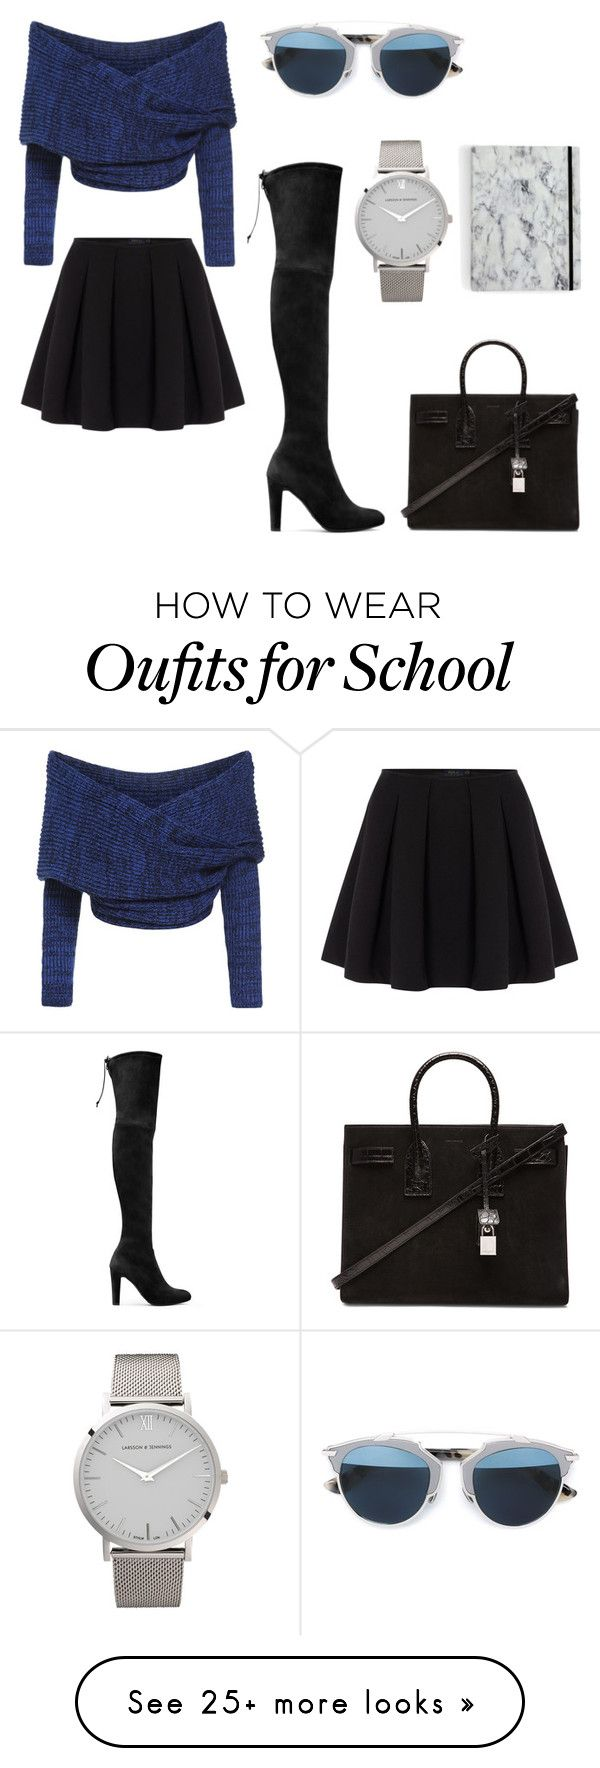 """""""Warm chic school wear"""" by shaeelee on Polyvore featuring Polo Ralph Lauren, Stuart Weitzman, Larsson & Jennings, Yves Saint Laurent, Christian Dior, women's clothing, women's fashion, women, female and woman"""